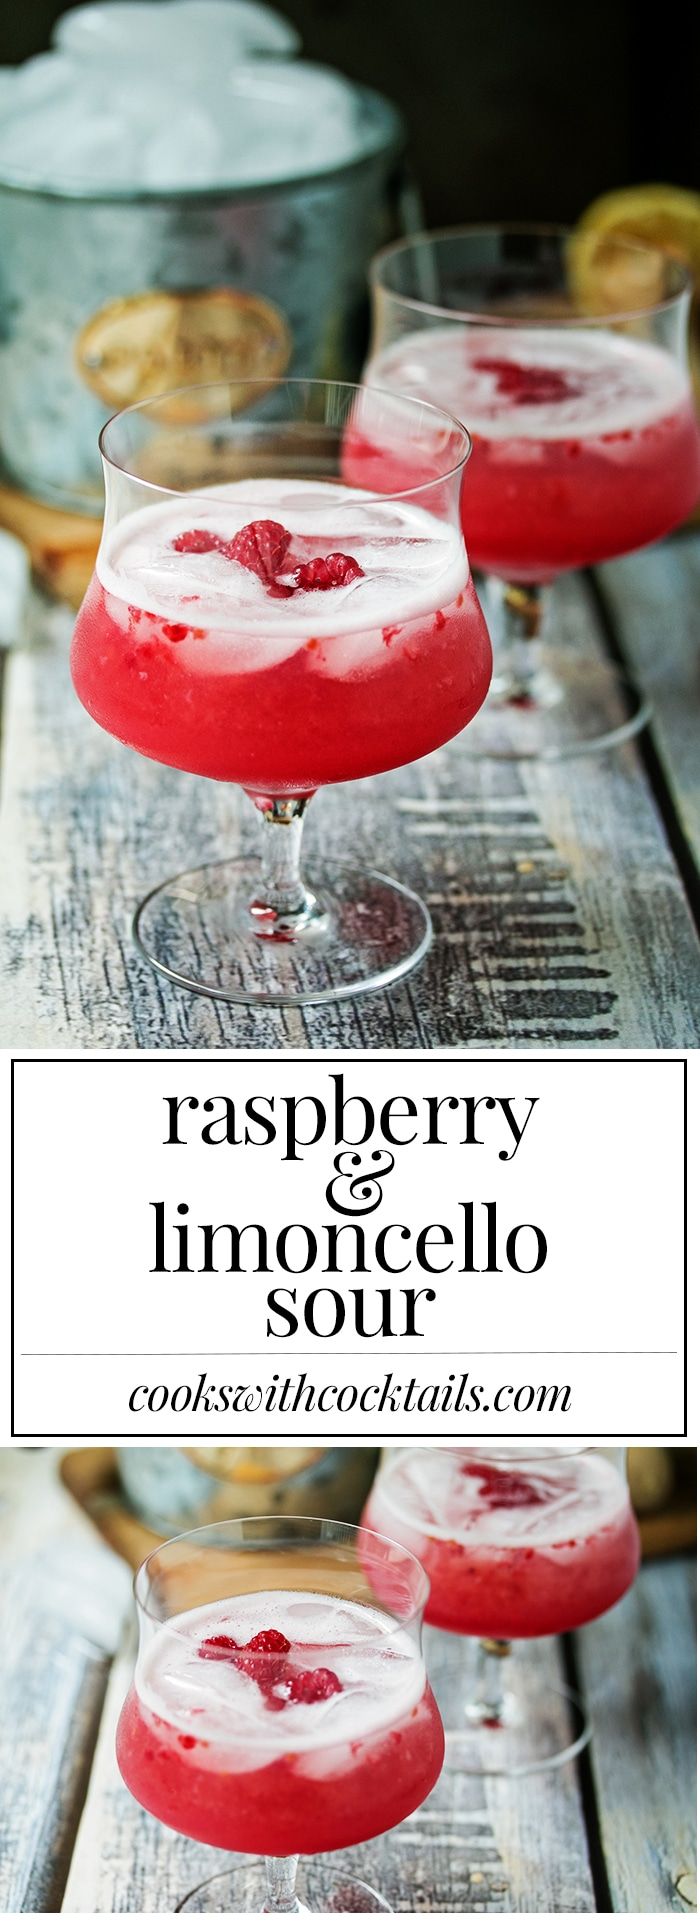 Raspberry & Limoncello Vodka Sour